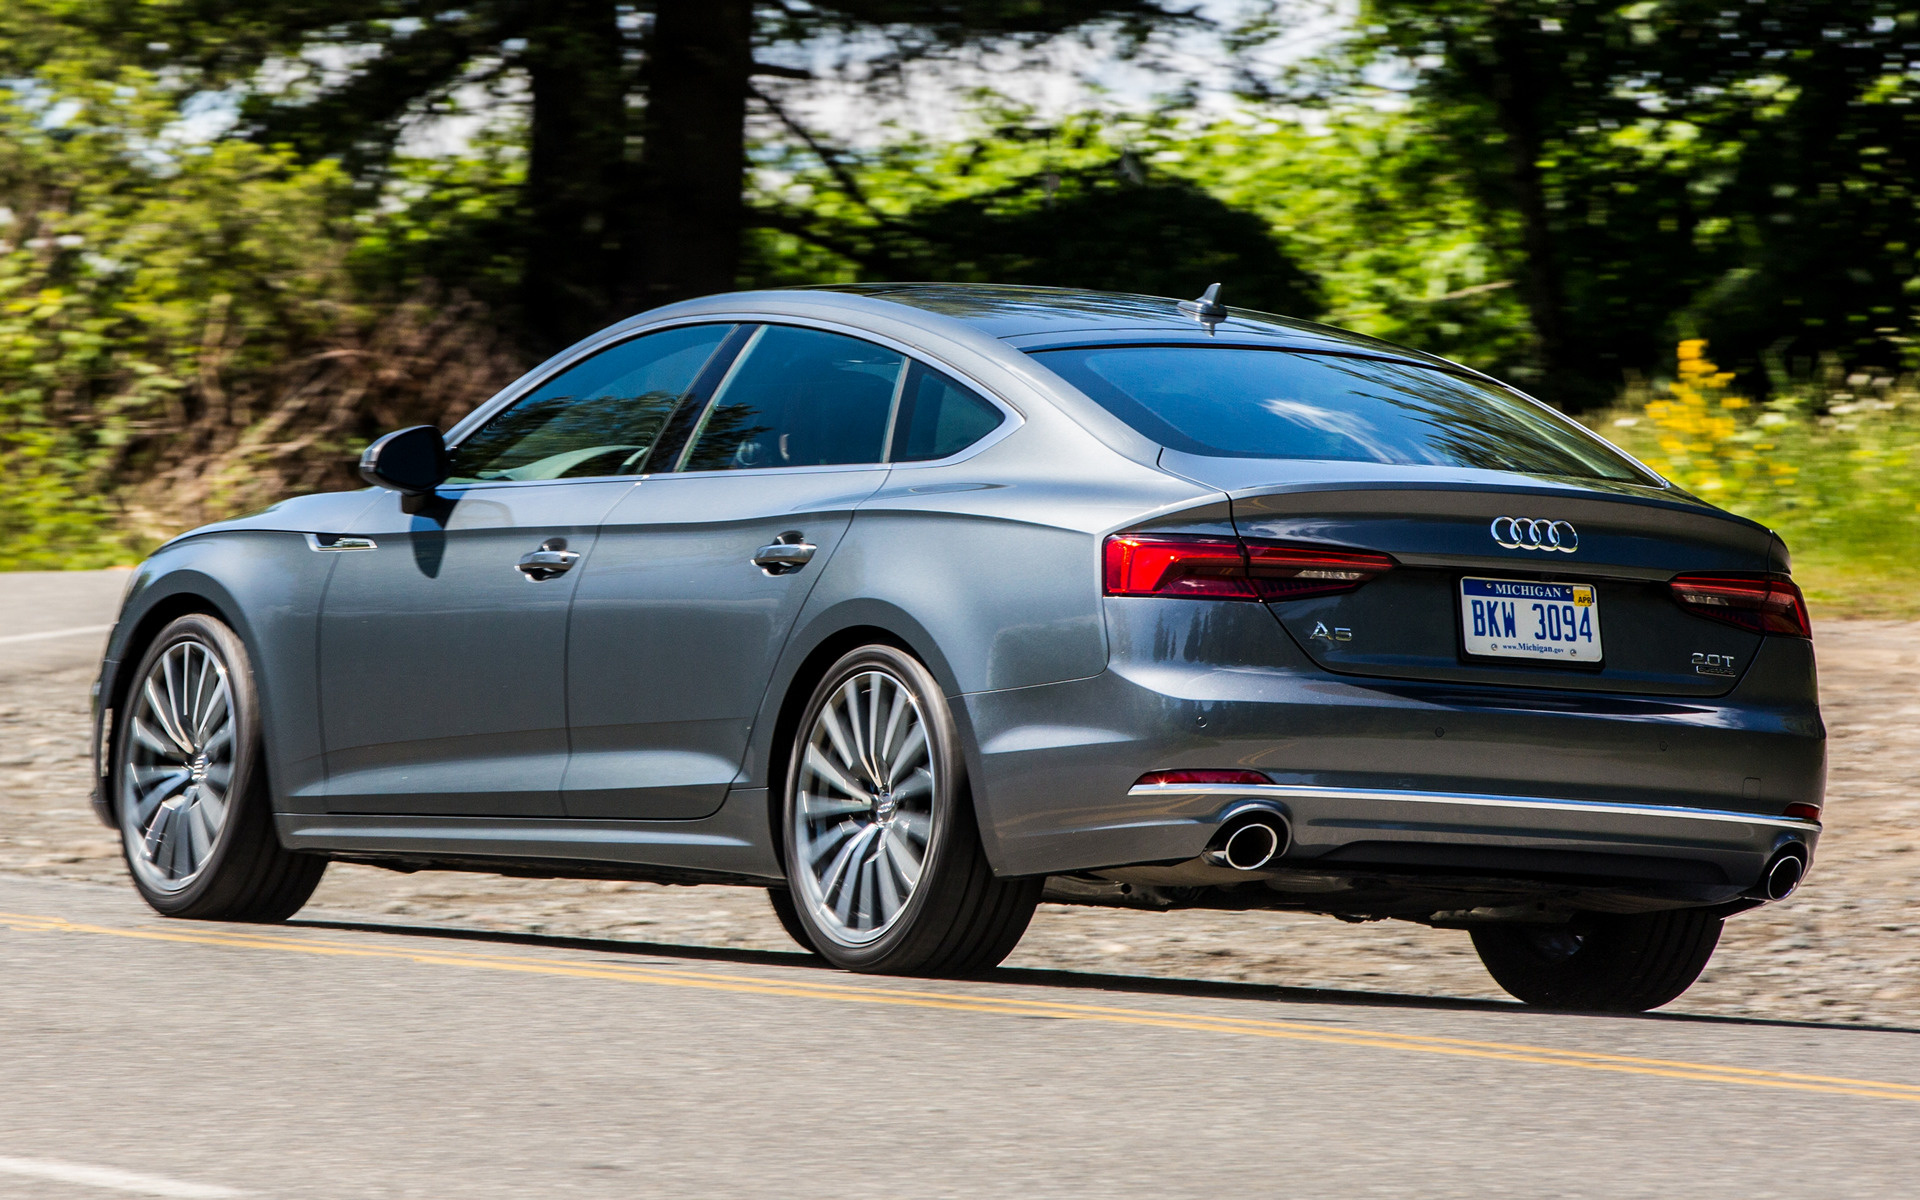 Audi A5 Sportback (2018) US Wallpapers and HD Images - Car Pixel